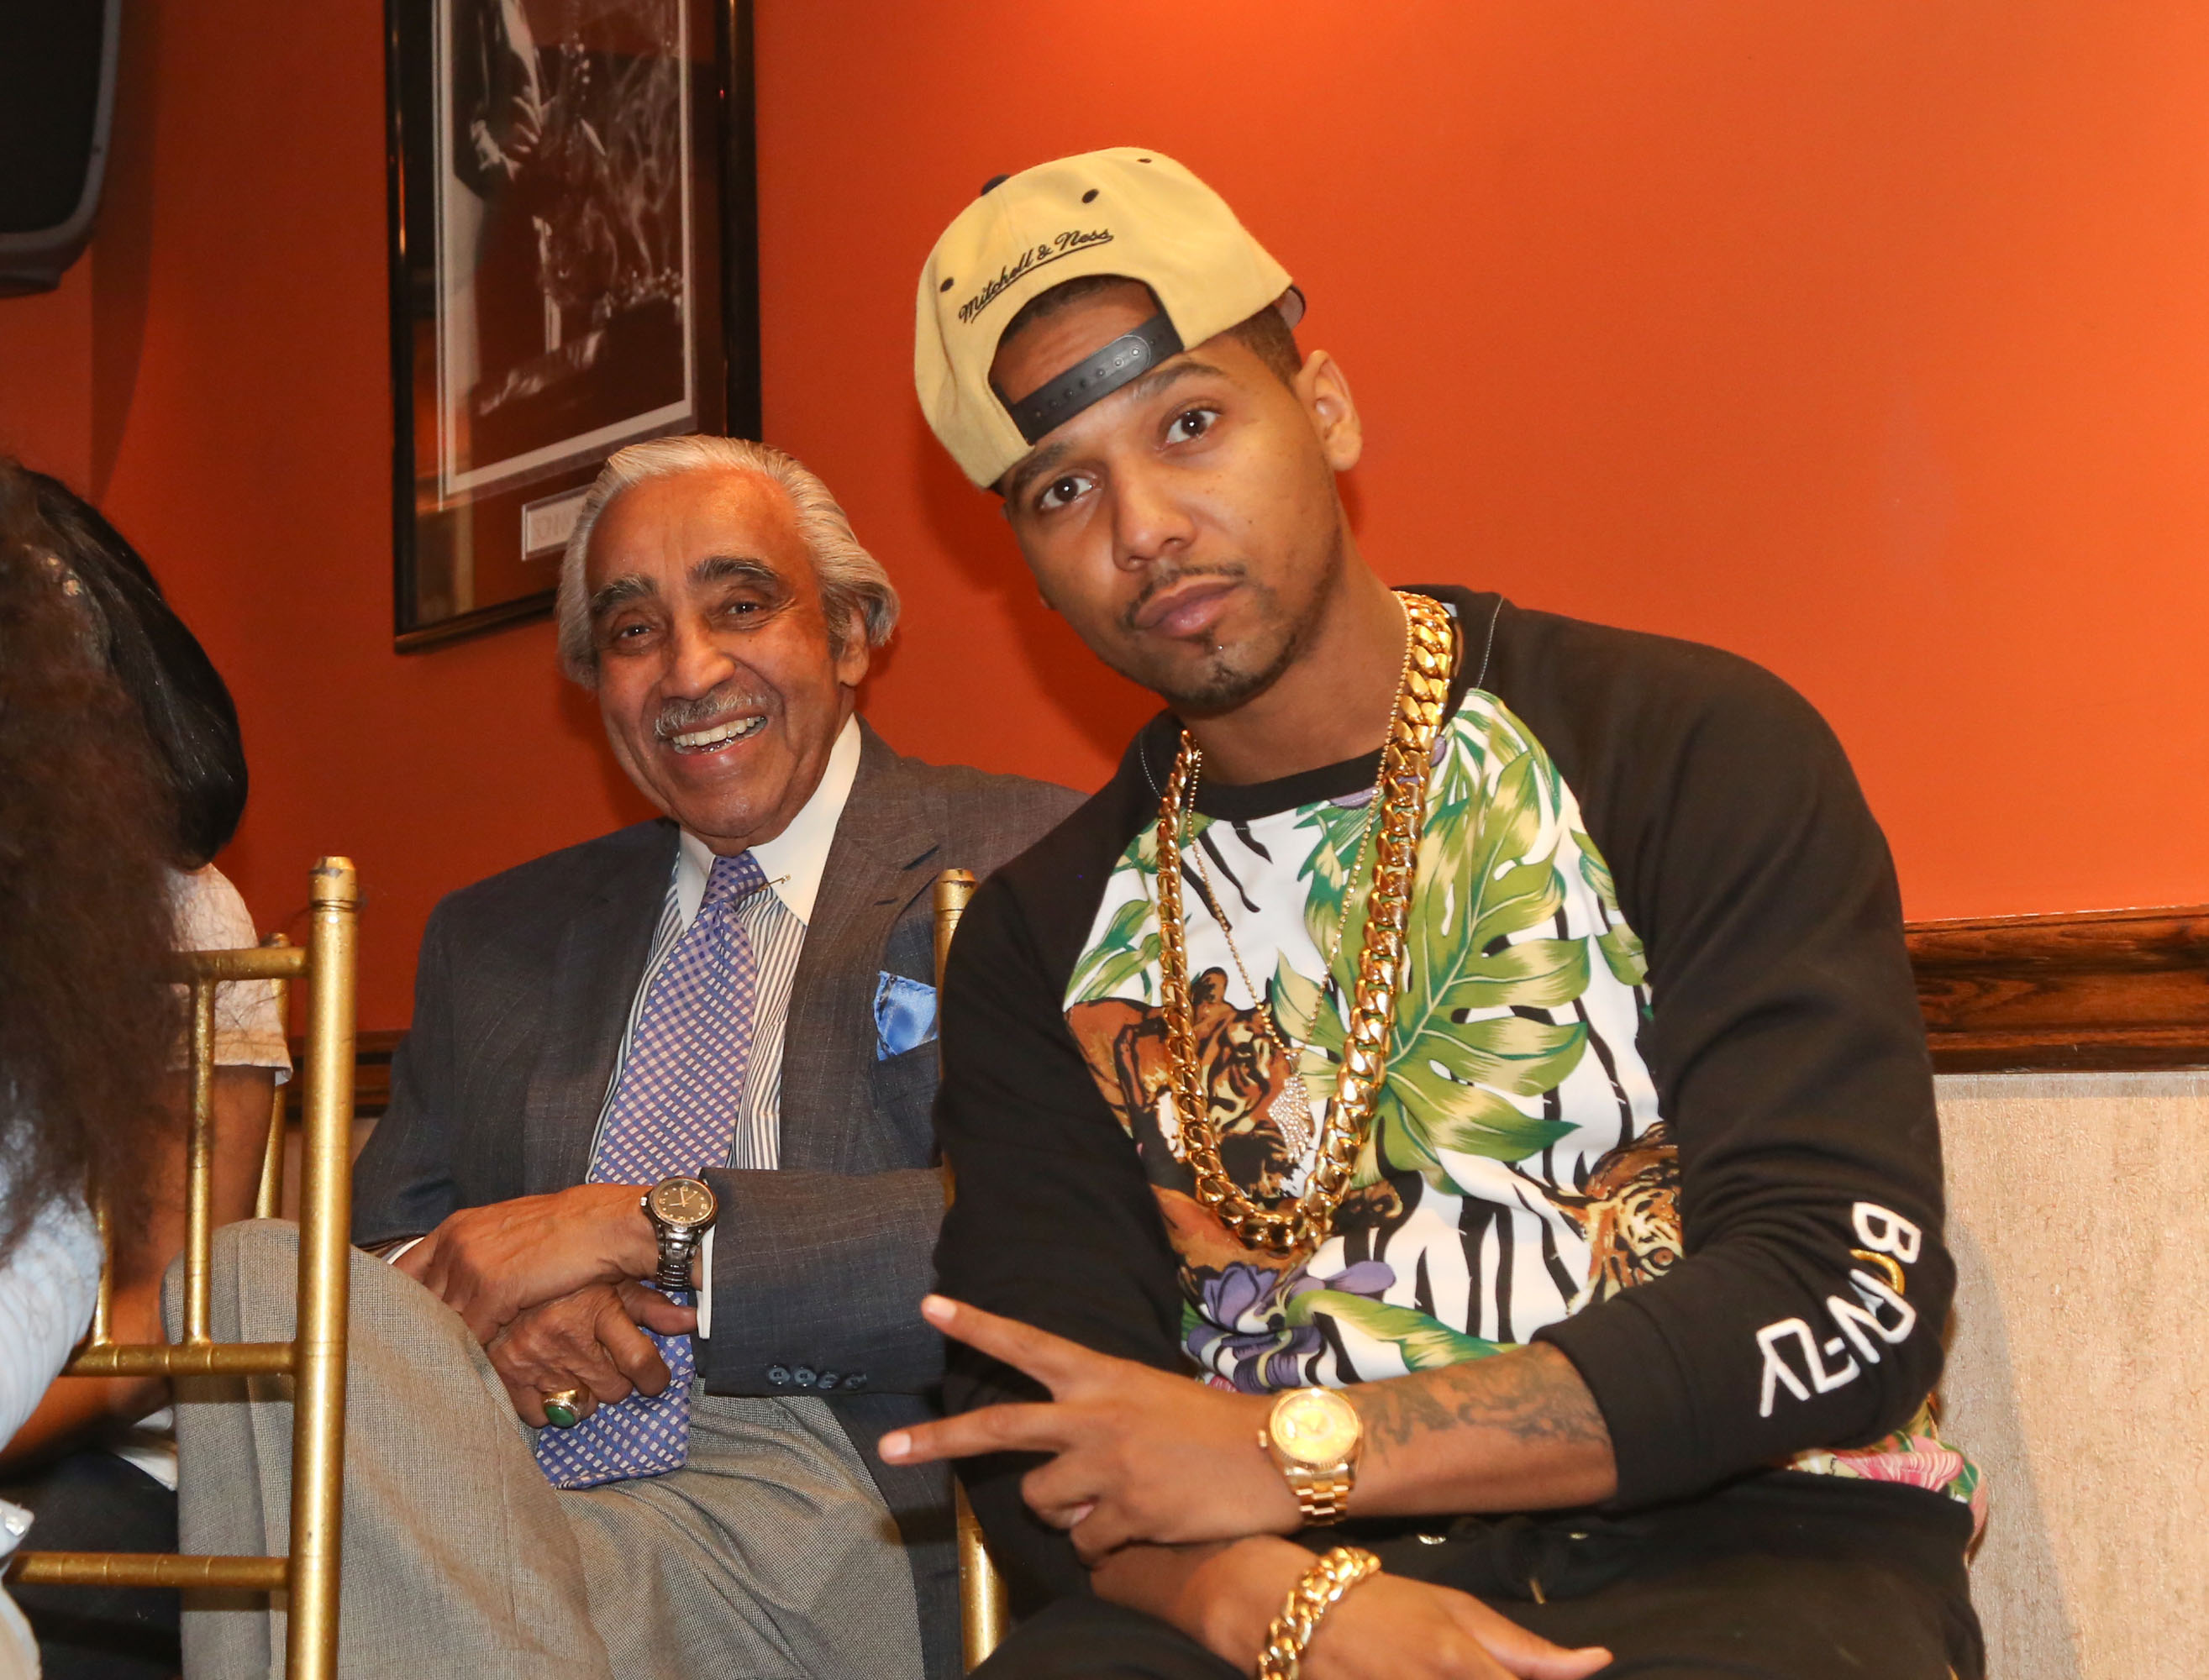 Charles Rangel and Juelz Santana attend the #GetCoveredTour press conference at Sylvia's in the Harlem neighborhood of New York City on March 28, 2014.